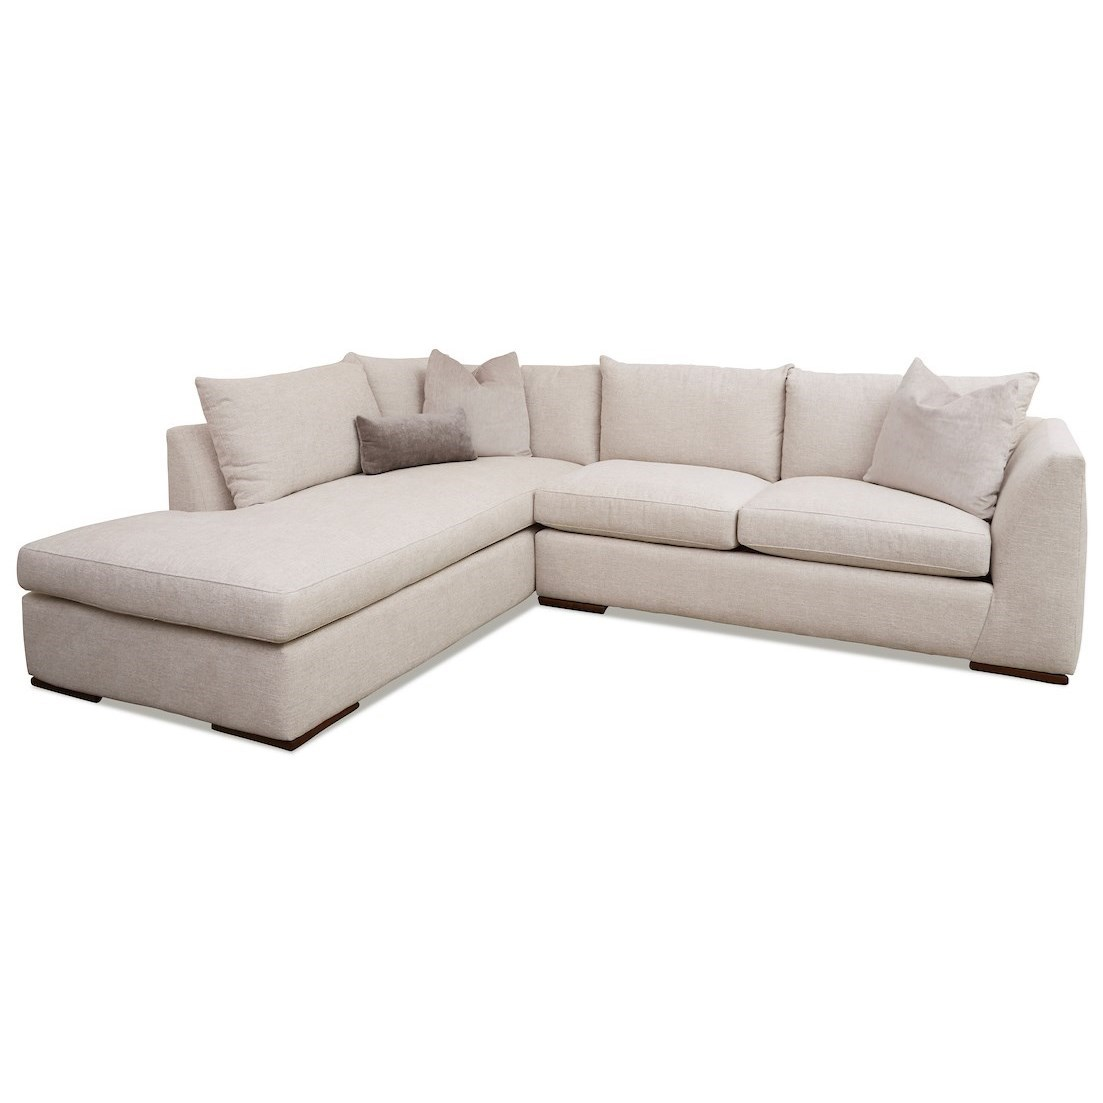 Flagler 2-Piece Sectional Sofa w/ LAF Sofa Chaise by Klaussner at Johnny Janosik